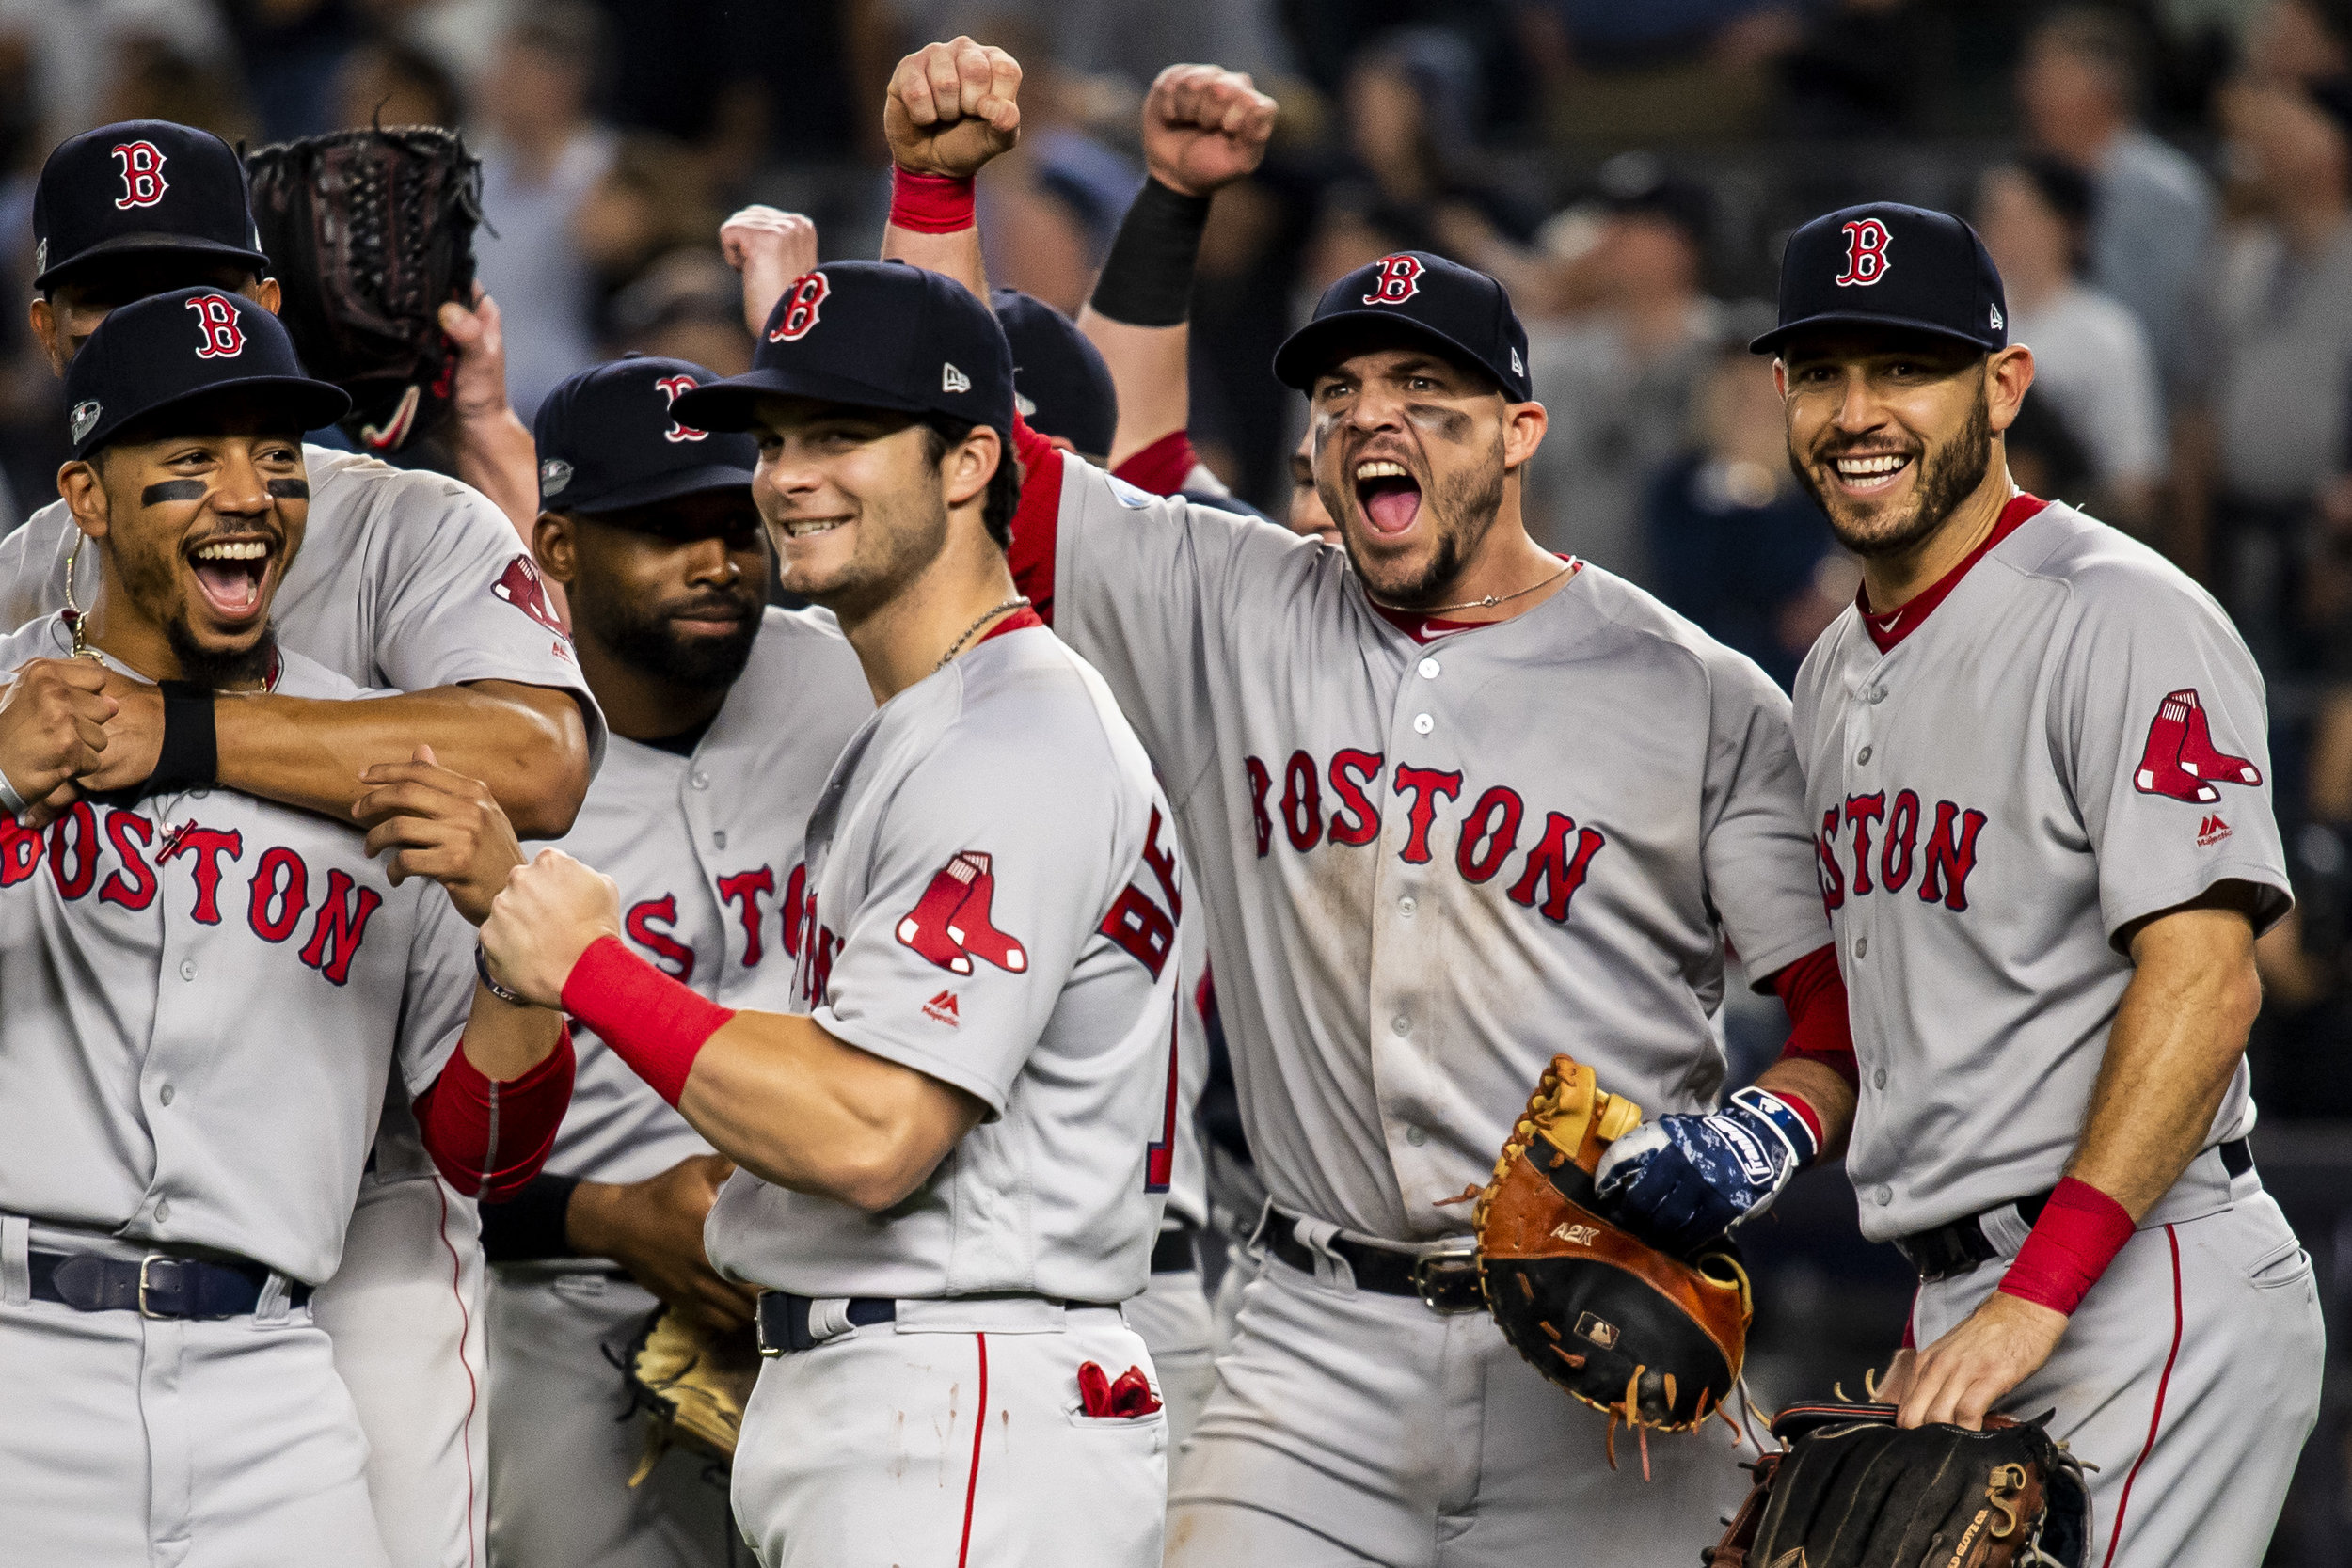 October 9, 2018, New York, NY: The team celebrates on the field after the Boston Red Sox defeated the New York Yankees in Game 4 of the ALDS to win the series at Yankee Stadium in New York, New York on Tuesday, October 9, 2018. (Photo by Matthew Thomas/Boston Red Sox)